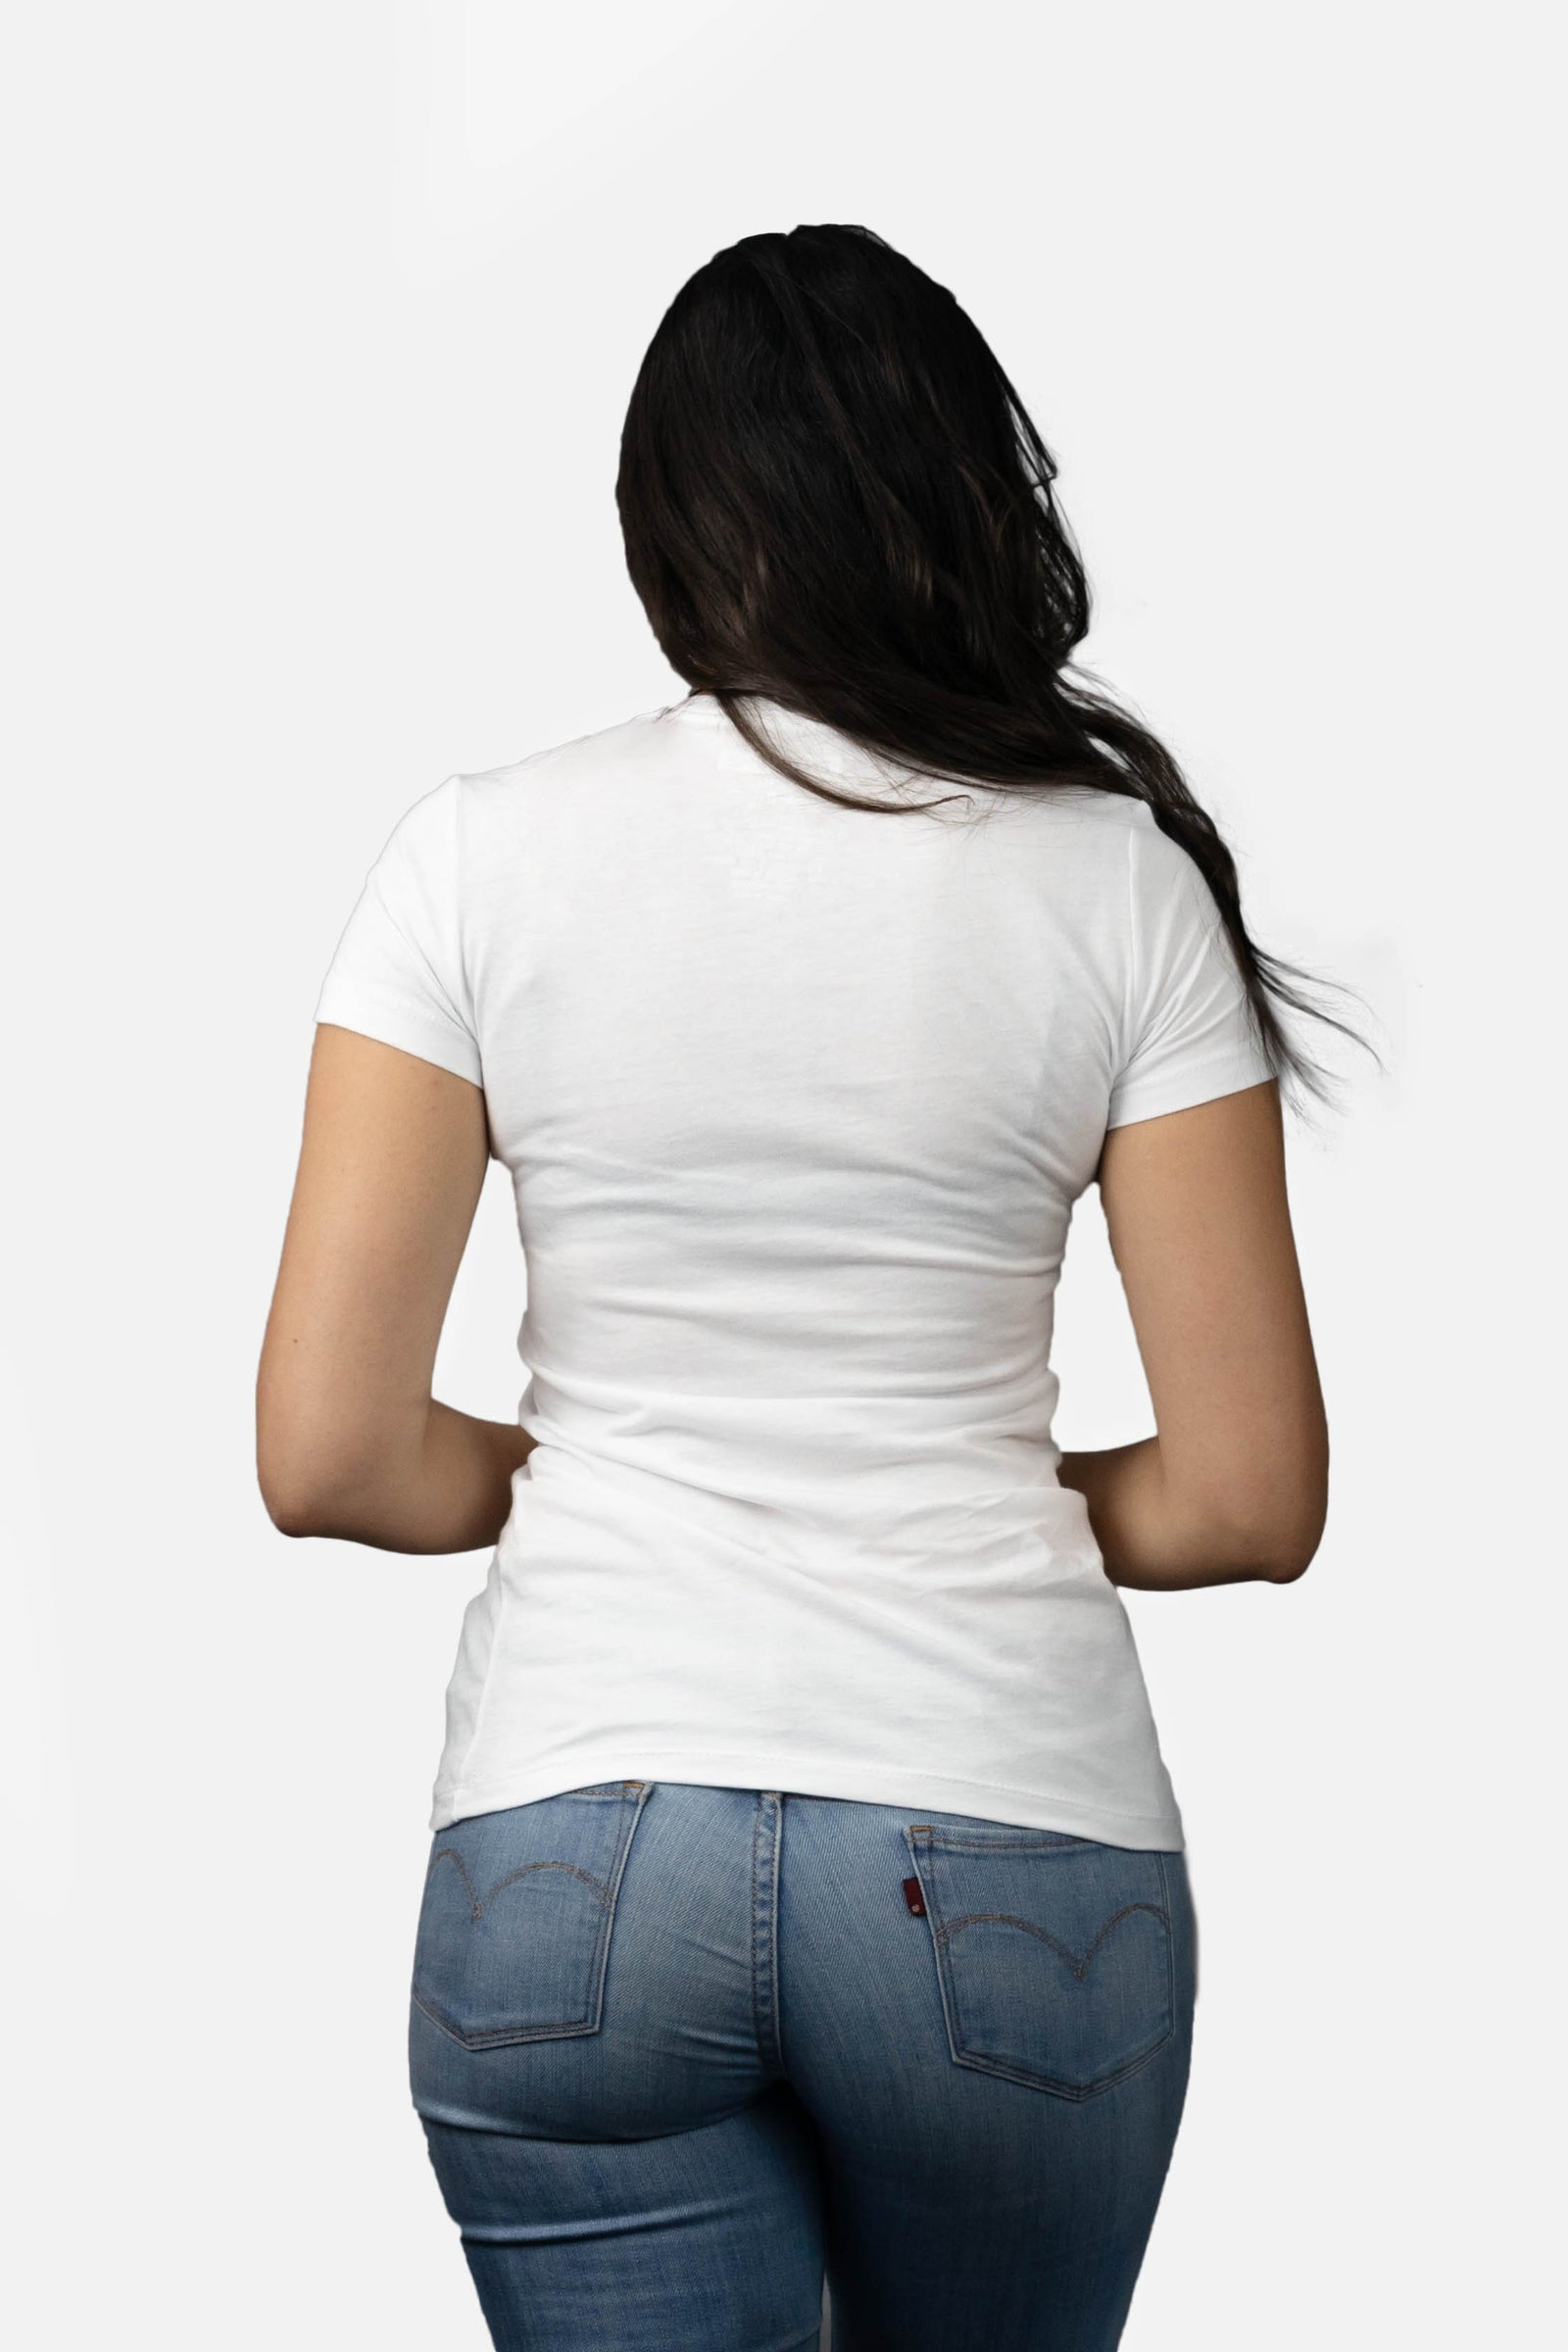 Womens Tiny Logo ENTRPRNR Tee – White - ENTRPRNR® | The Entrepreneur's Clothing Brand. | Stagnancy is the Enemy. Action is King.